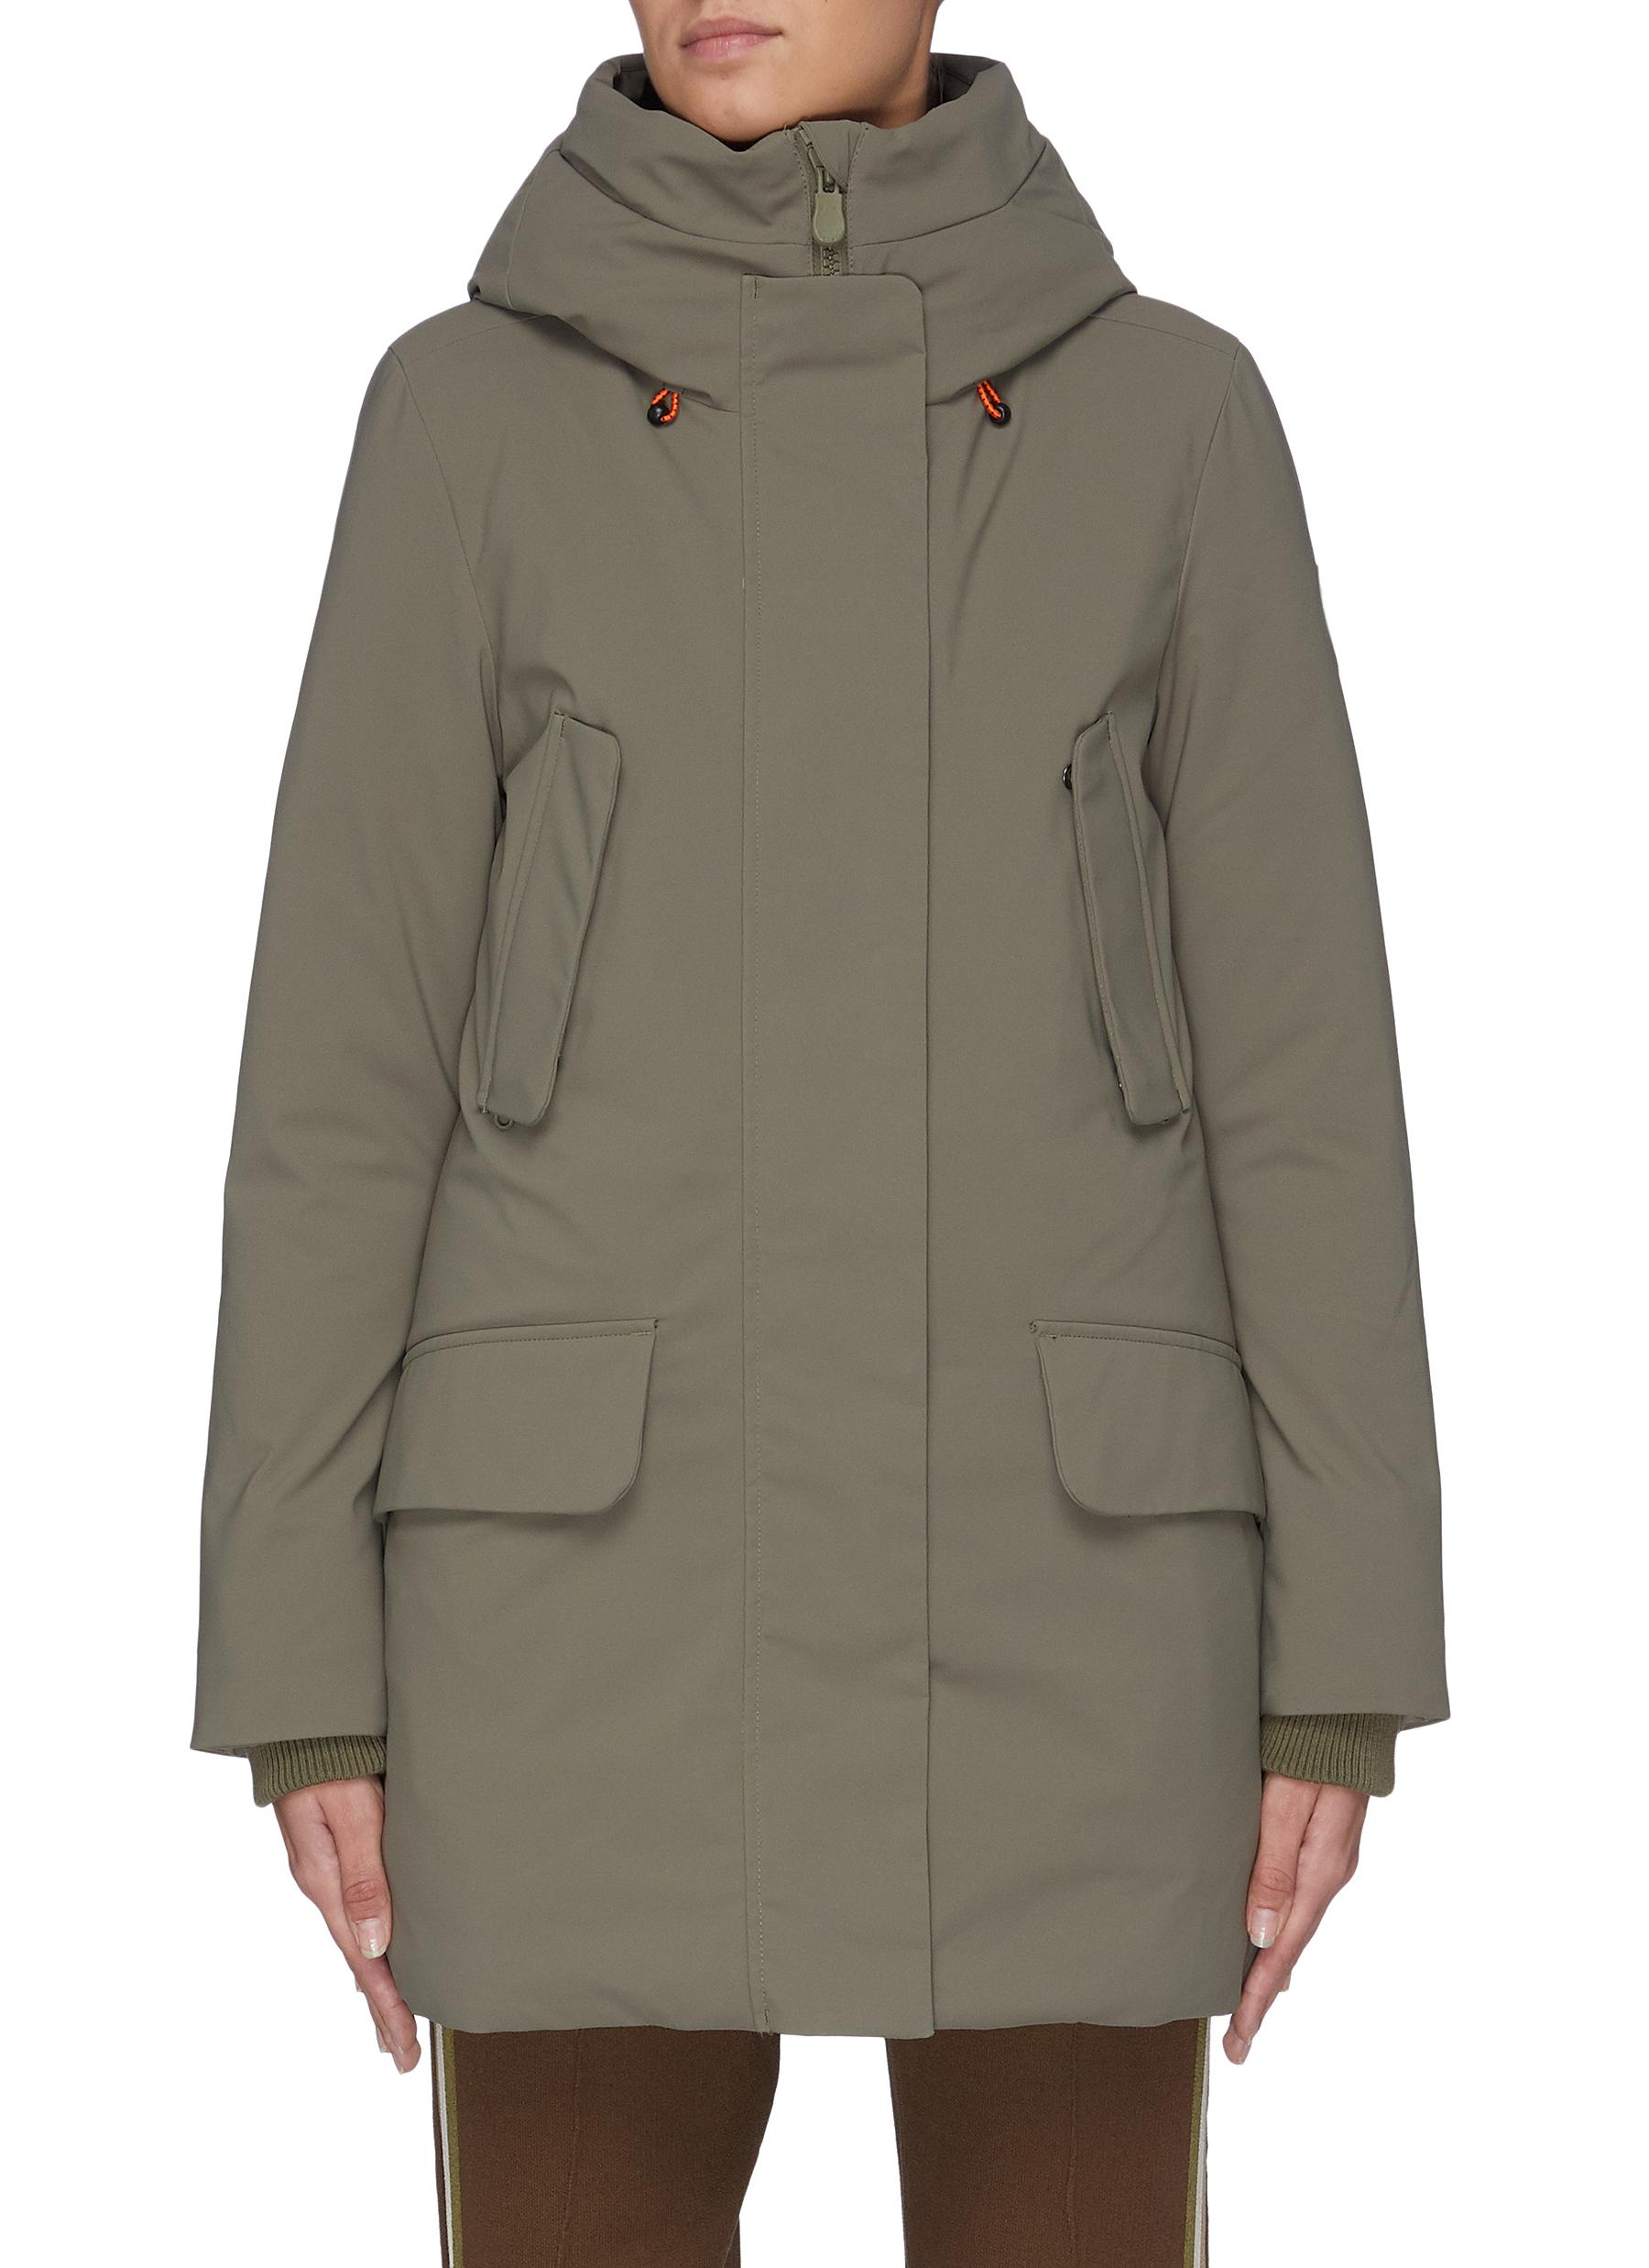 Plumtech® lined hooded puffer parka by Save The Duck